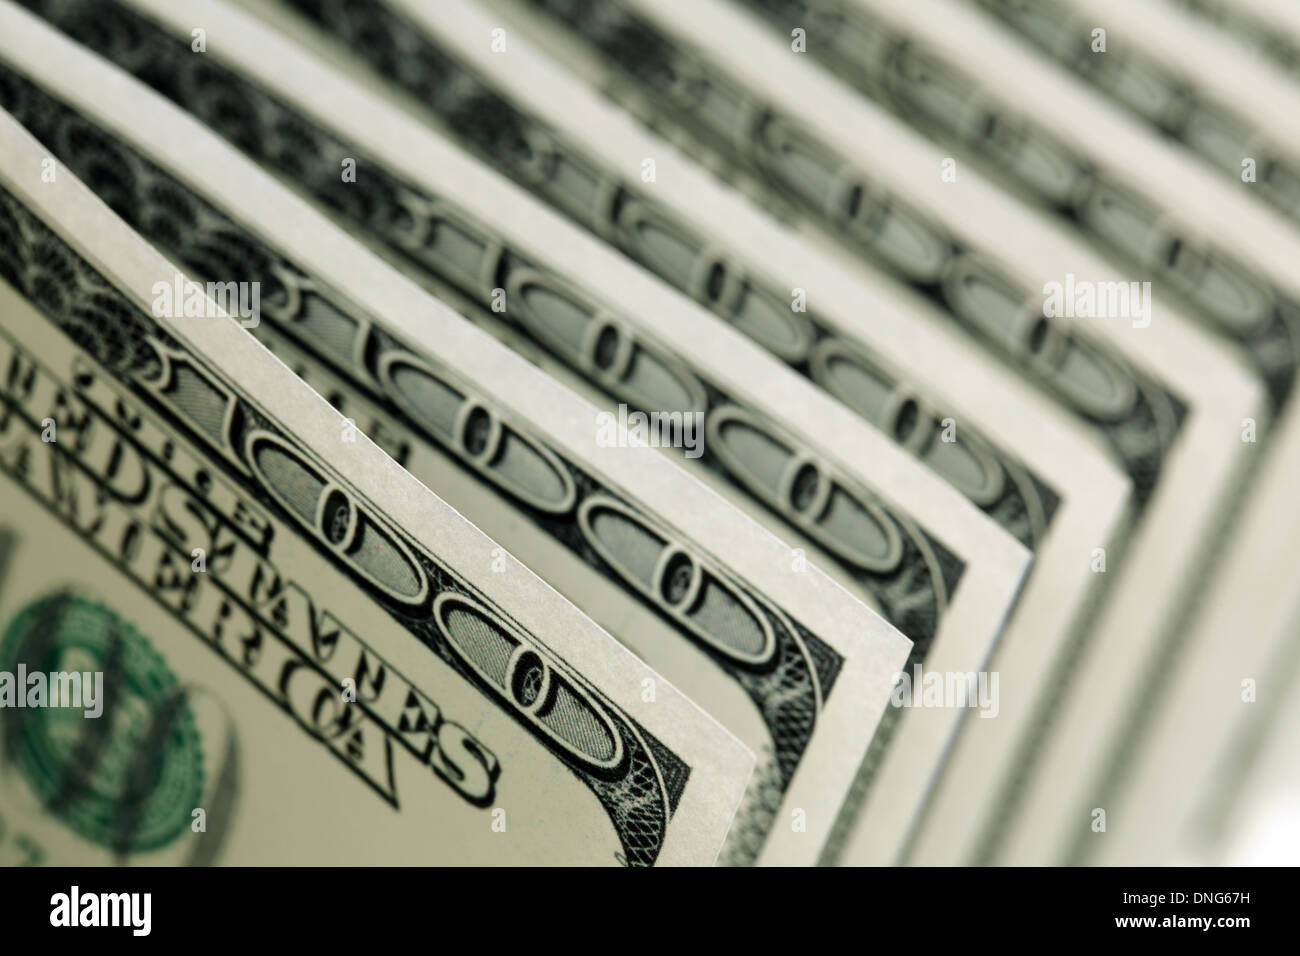 One hundred dollar bills - Stock Image